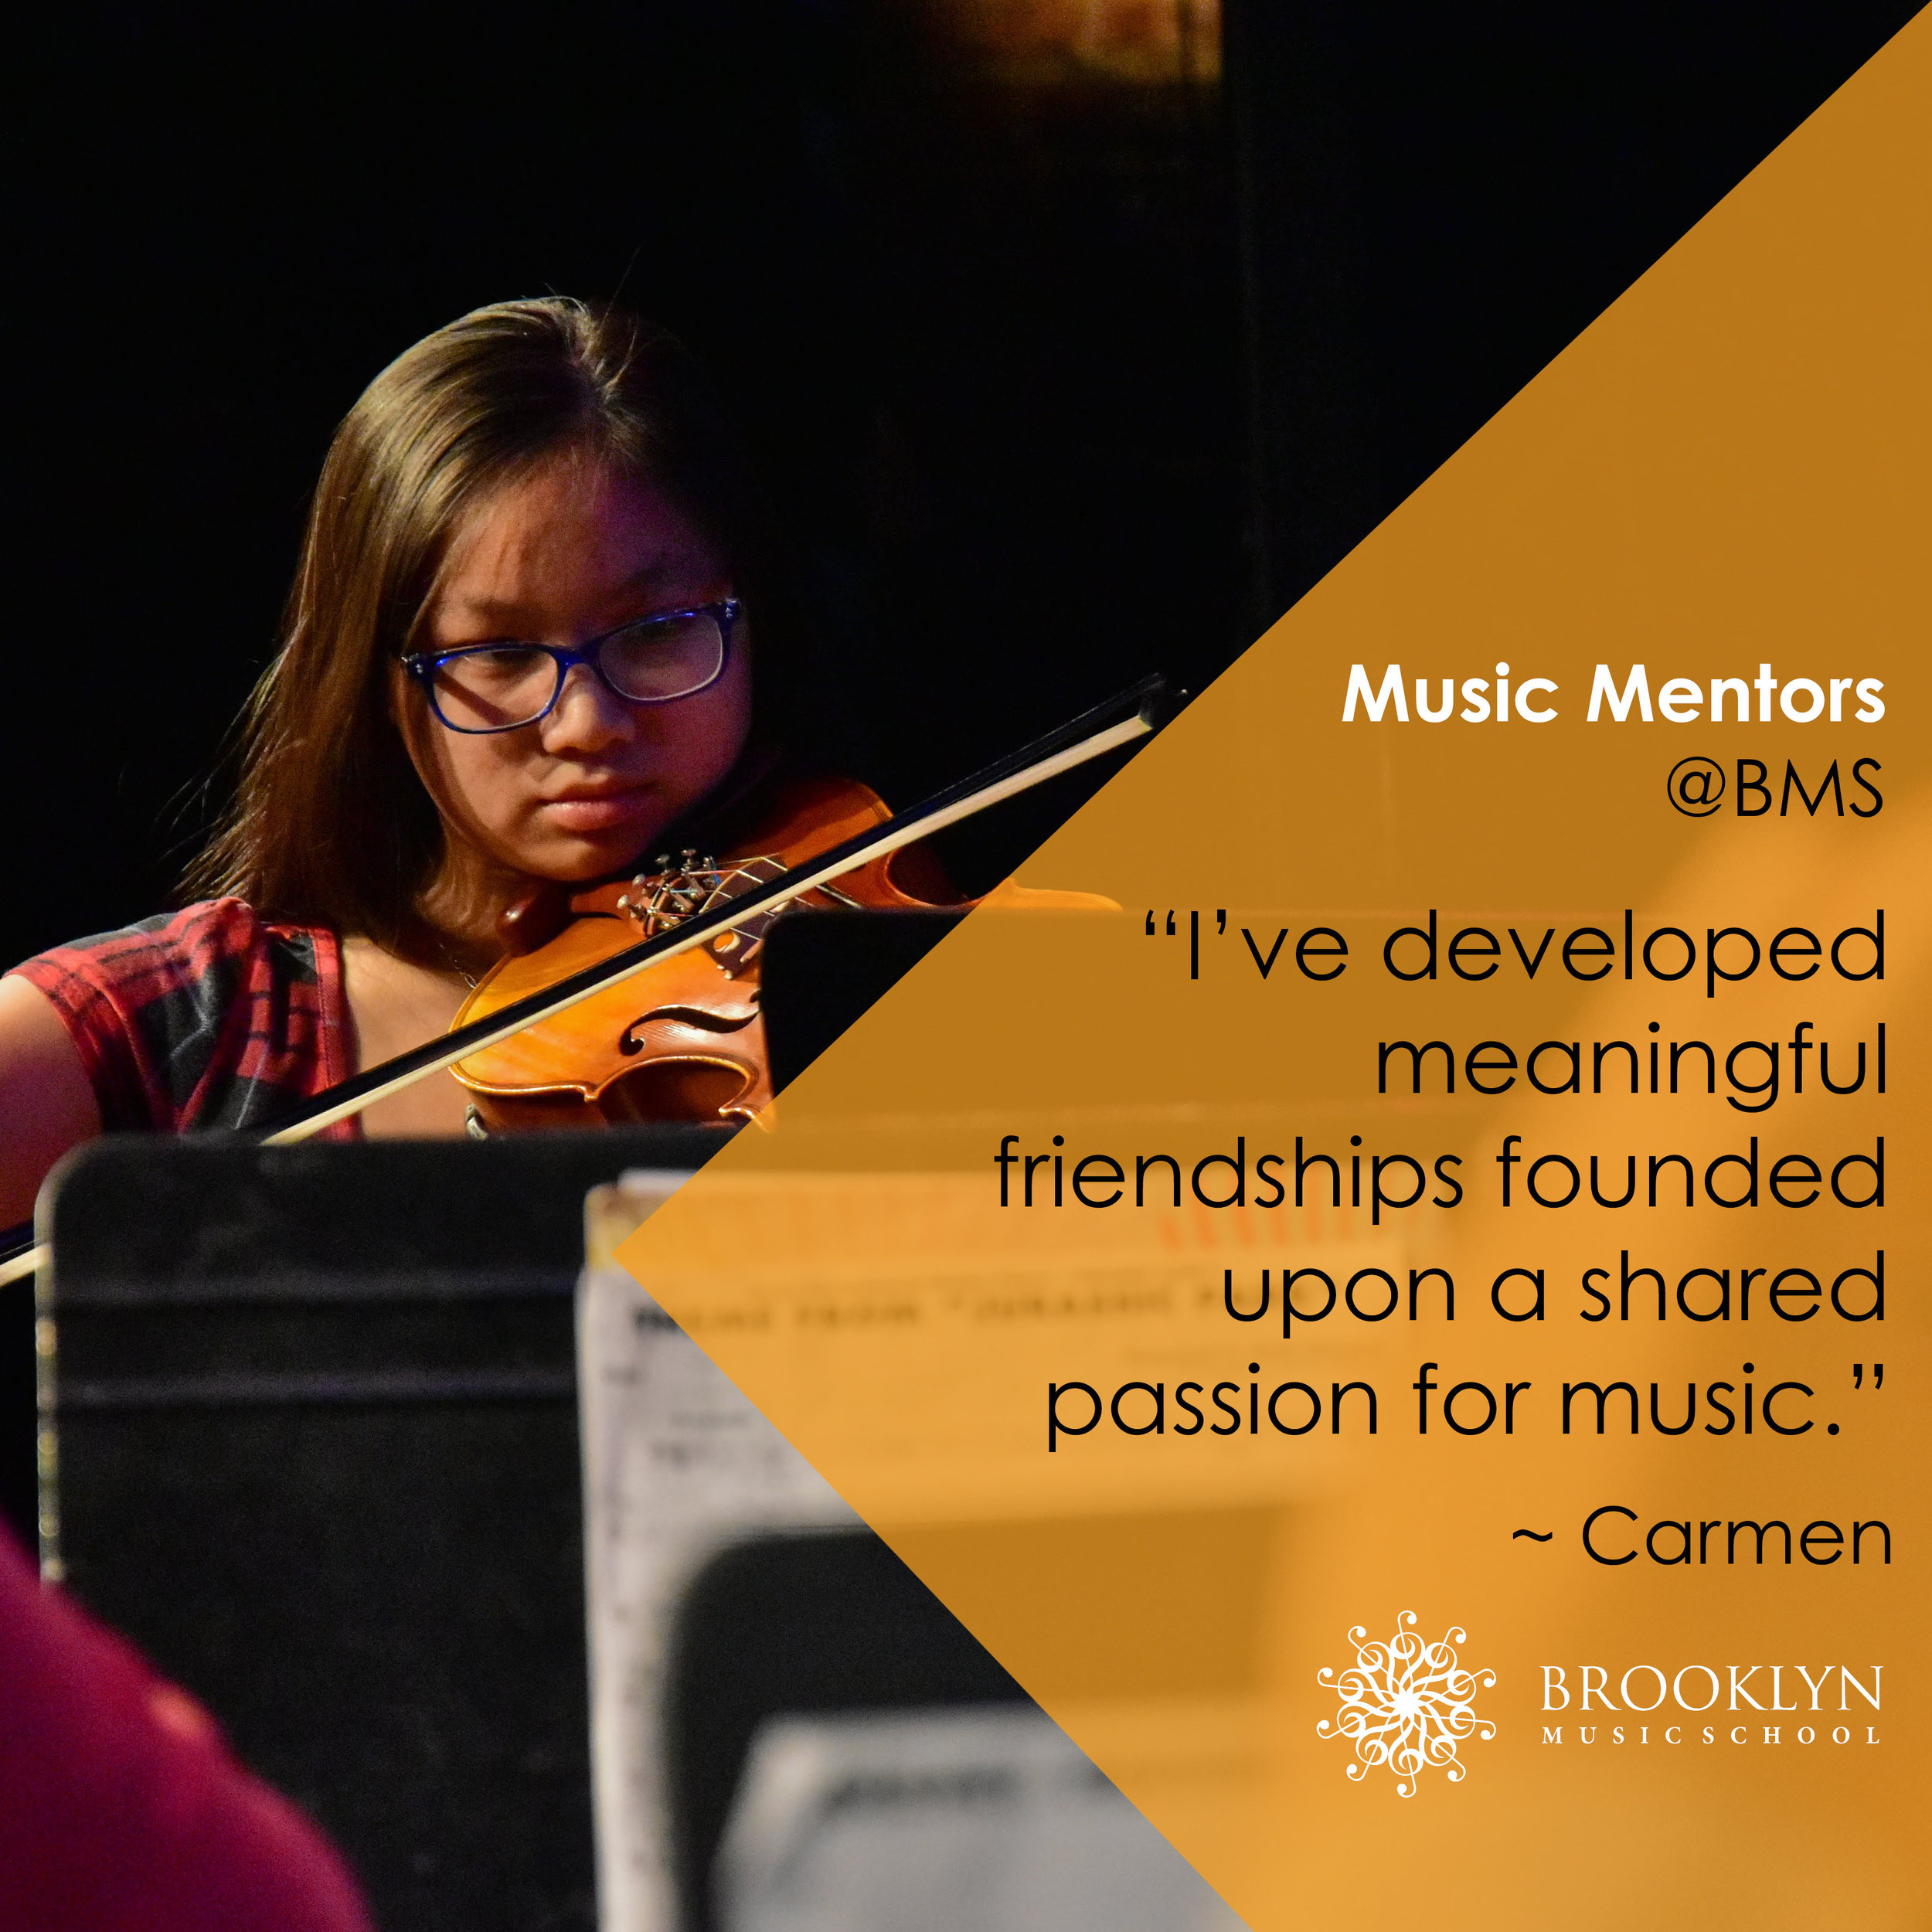 CARMEN (Violin & Piano) - I am exposed to a variety of opportunities relating to music education and musical performance. I am able to explore both the teaching and learning sales of music education. As a mentor, I've been able to observe and help out with teaching classes. One thing that really stood out to me was the way classes were taught. Since my school doesn't offer music theory classes, this school allows me to deepen my understanding of the technicalities of music. Before theory class, I didn't have much knowledge on the difficult types of chords and how they relate to each other.In addition, I've gotten various performance opportunities. For example, I've been able to perform with the youth and adult orchestras, as well as play solo in the recital. Before studying at BMS, I did not had many performance opportunities, so I immensely grateful for those that BMS provides me.I've also been able to develop some meaningful friendships. I've never been able to make many friends with the same passion for music, and part of this community pushes me to develop my musical abilities and understanding.